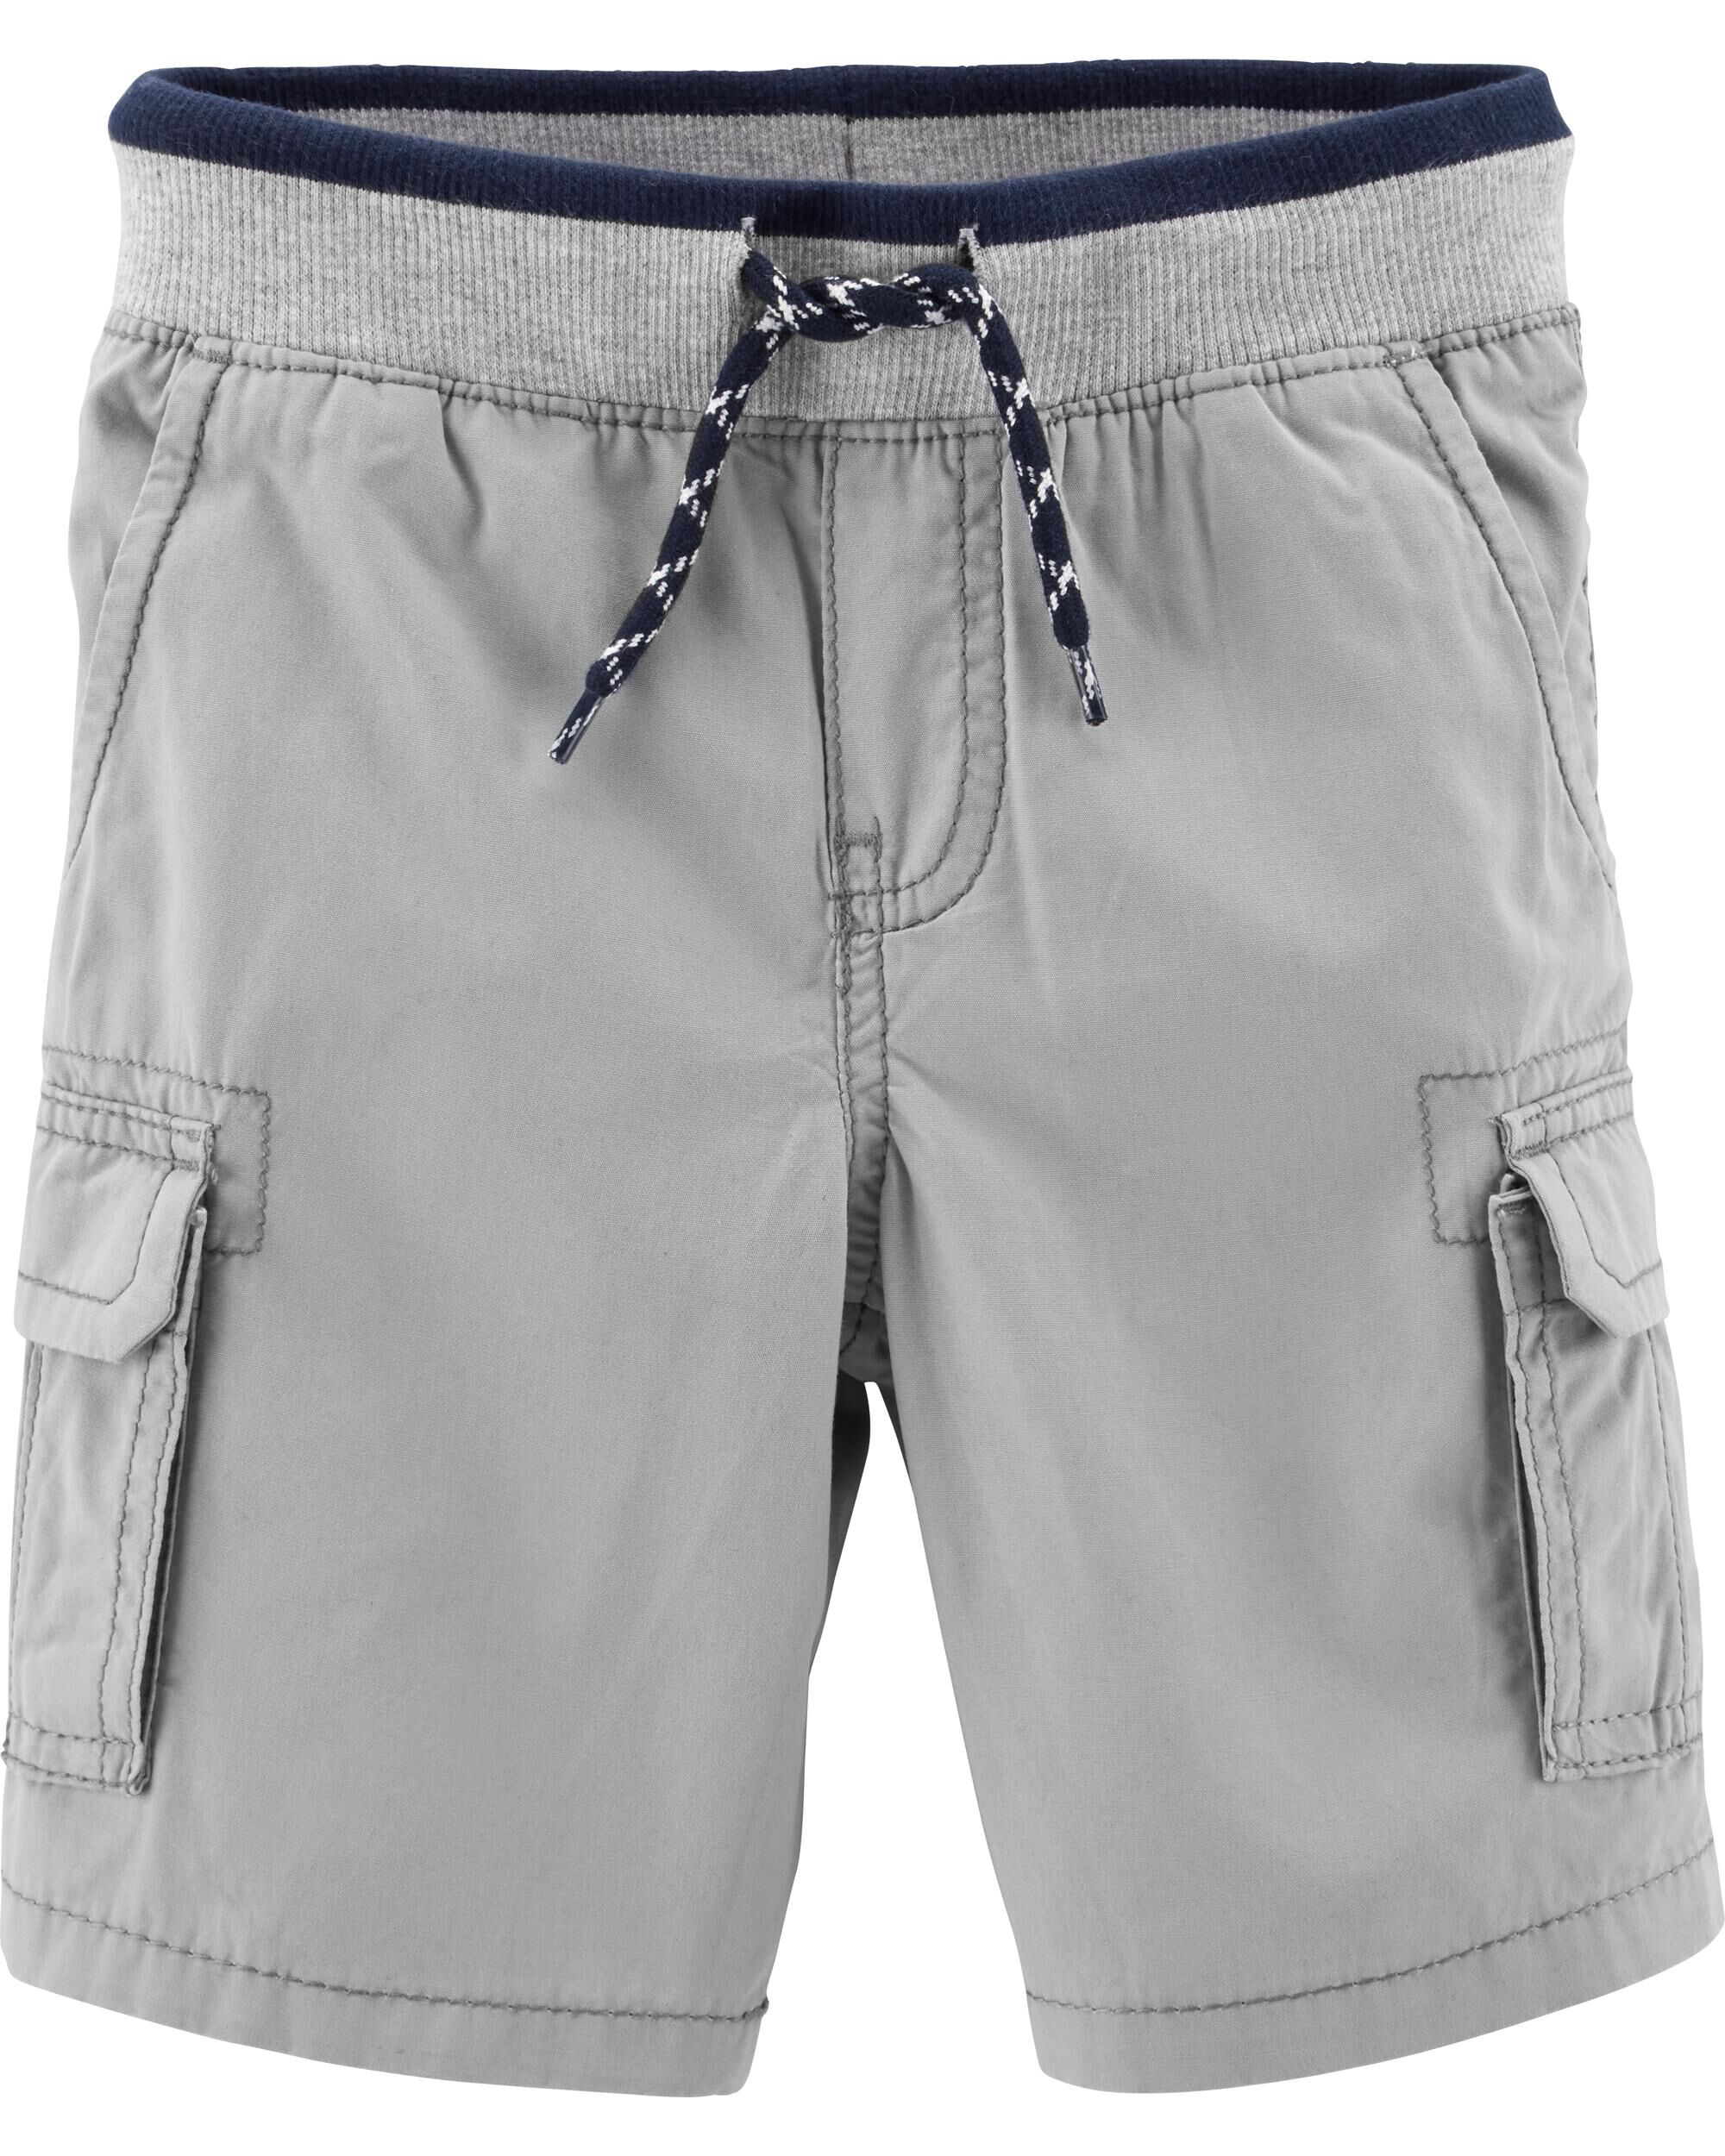 *Clearance*  Pull-On Poplin Shorts